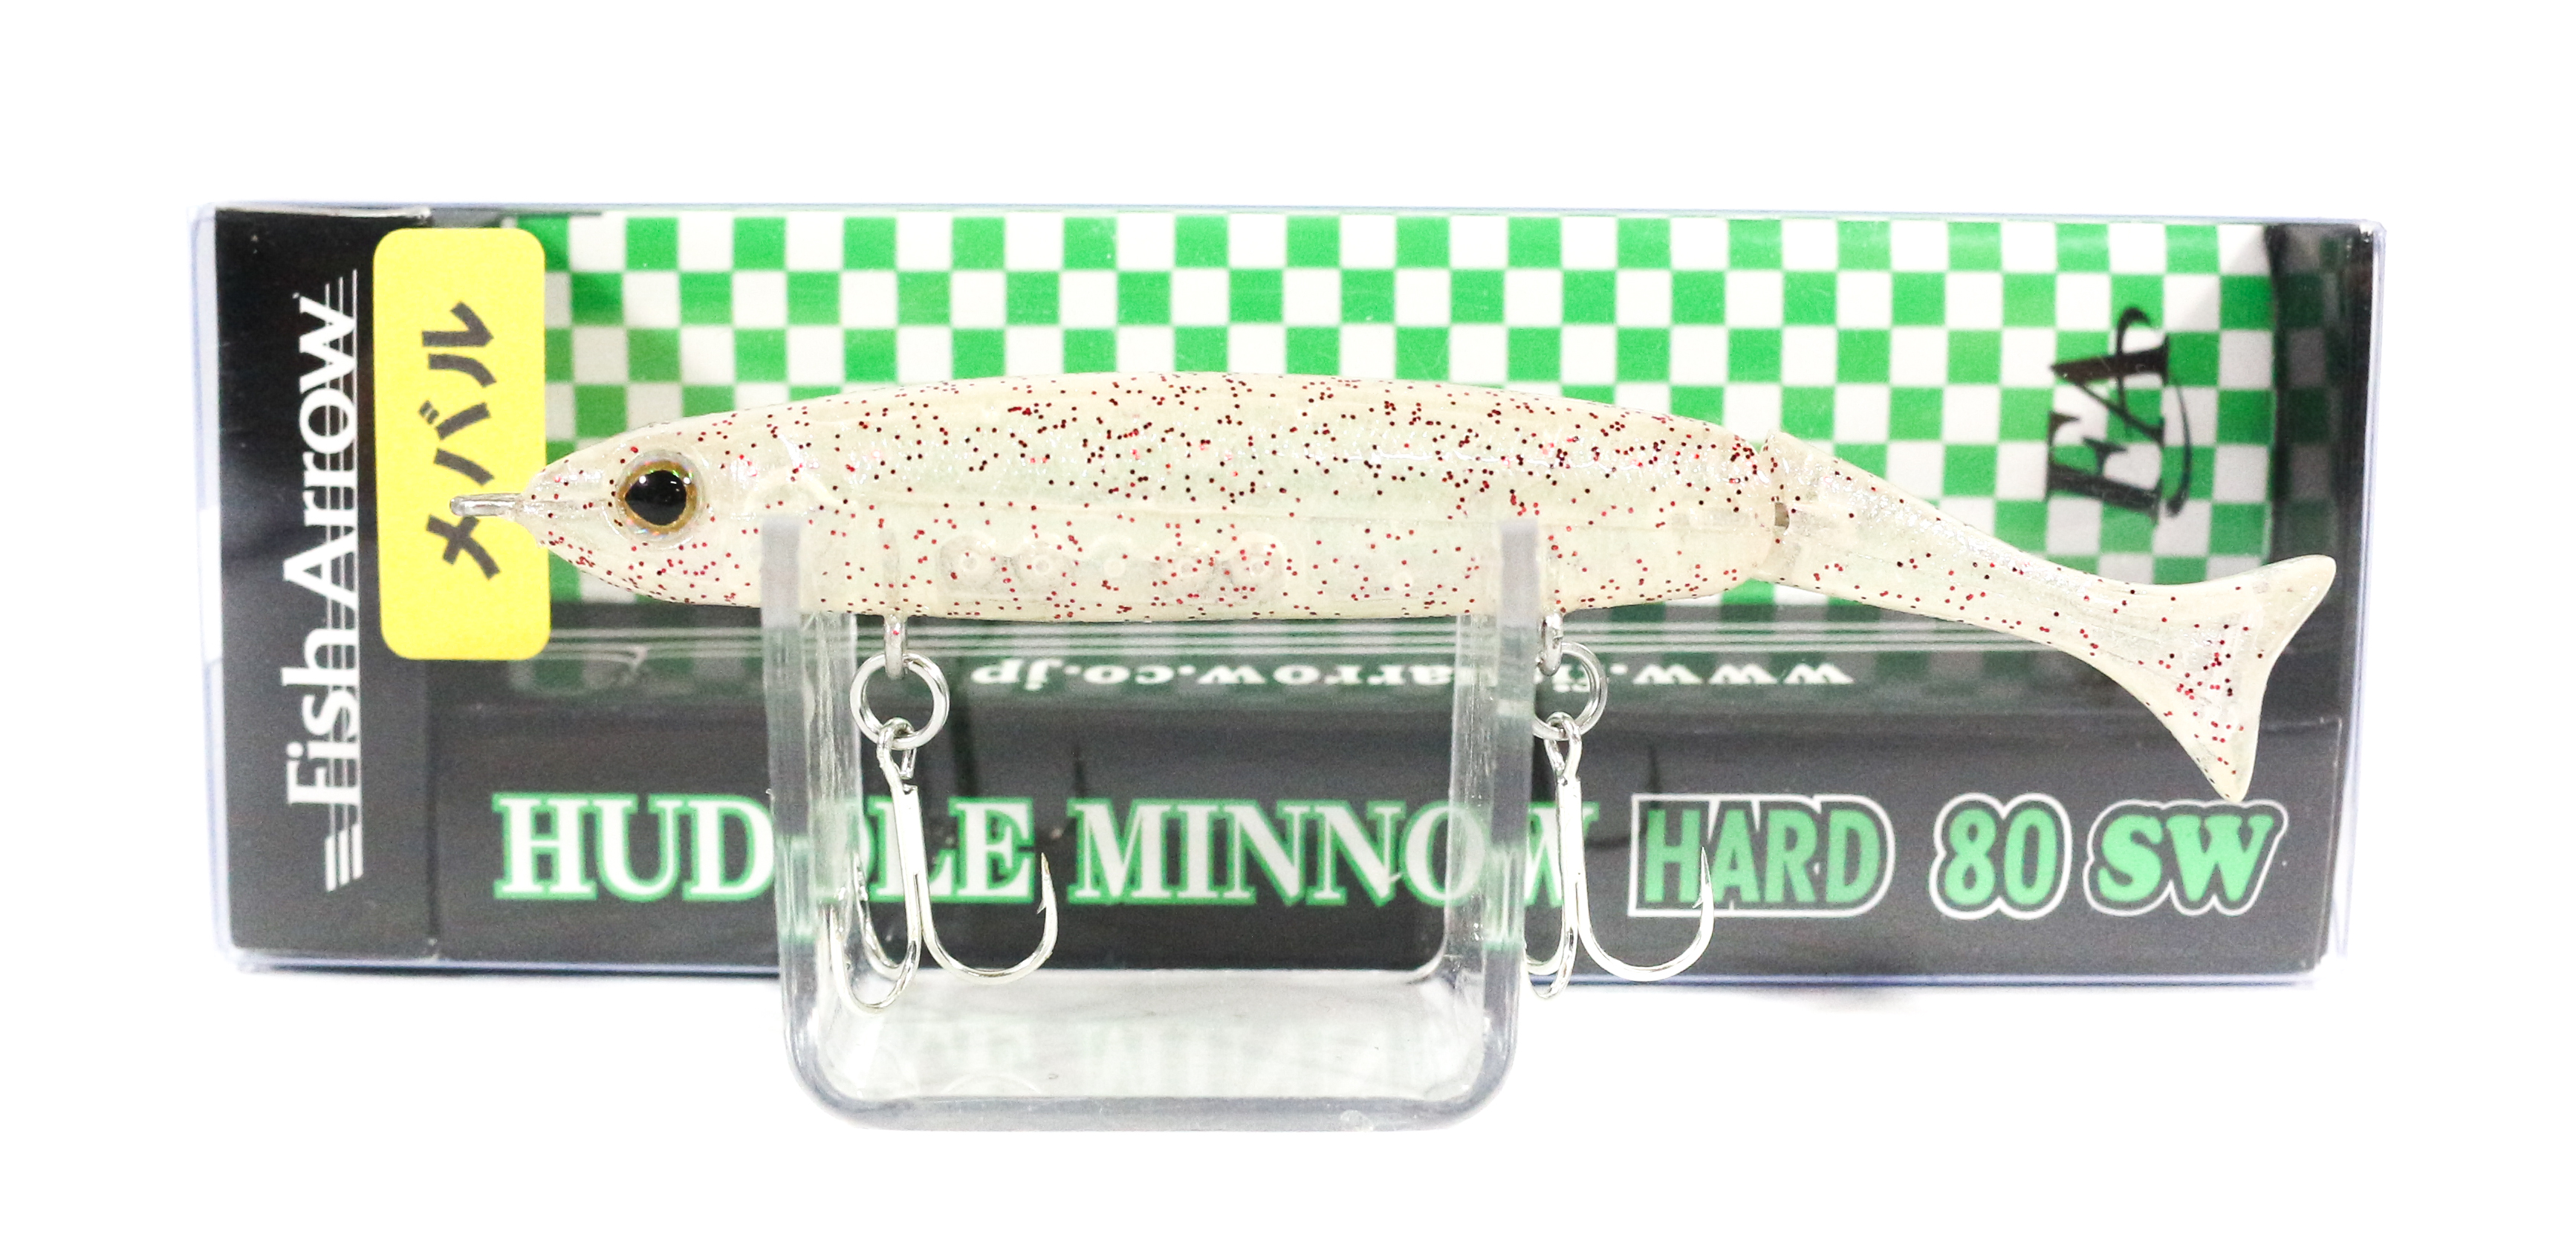 Fish Arrow Huddle Minnow Hard 80 SW Sinking Lure #M02 (0127)